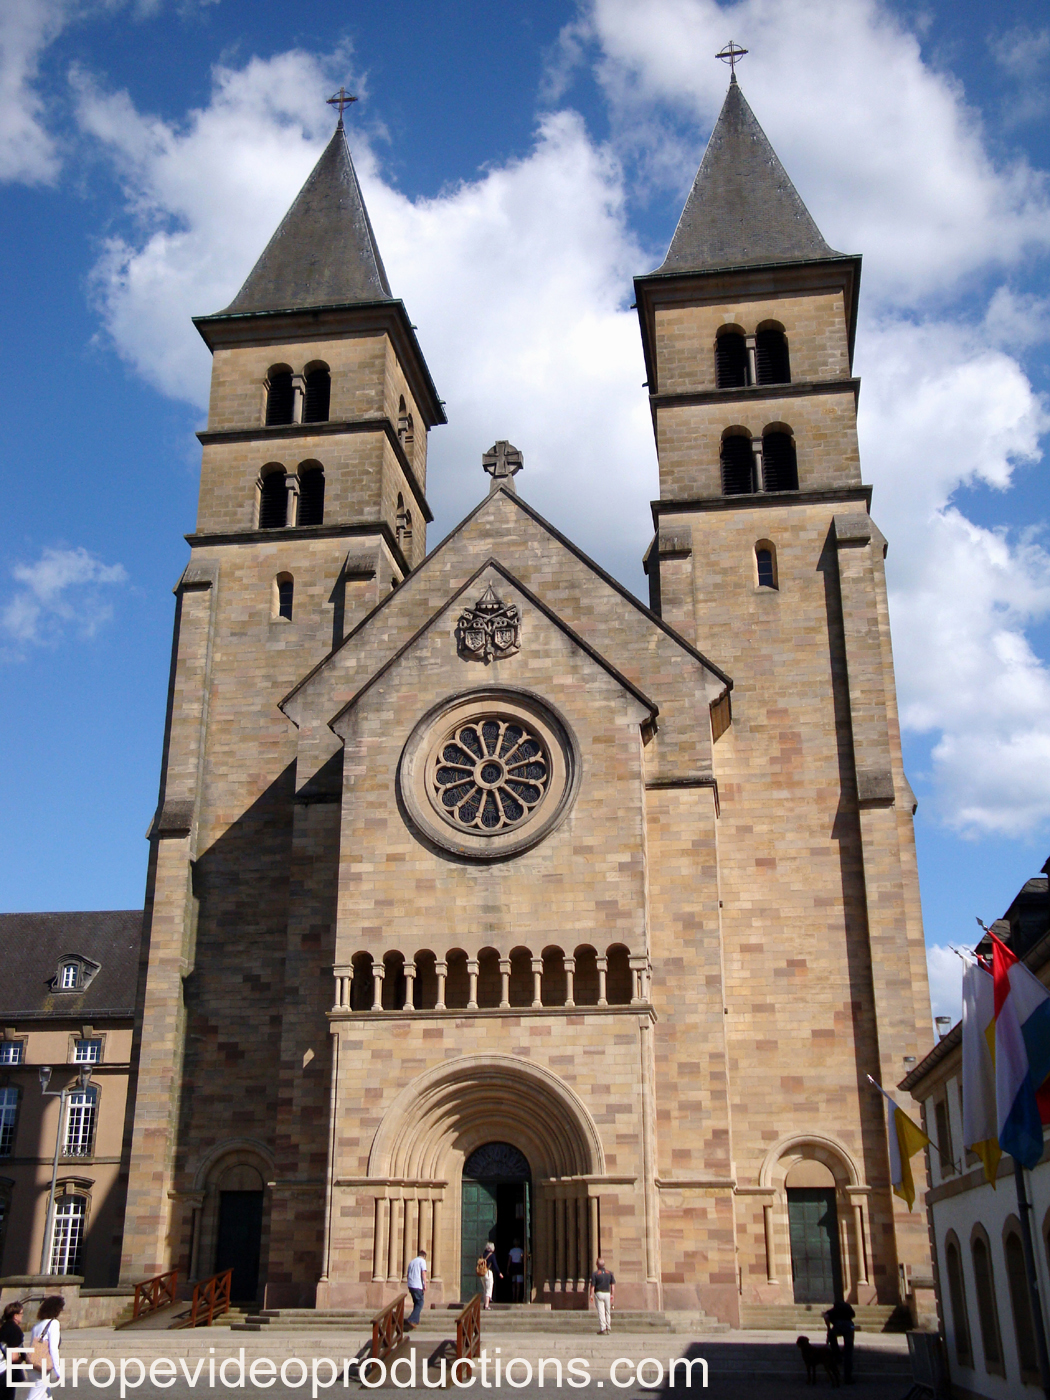 Abbey of Echternach in the Grand Duchy of Luxembourg